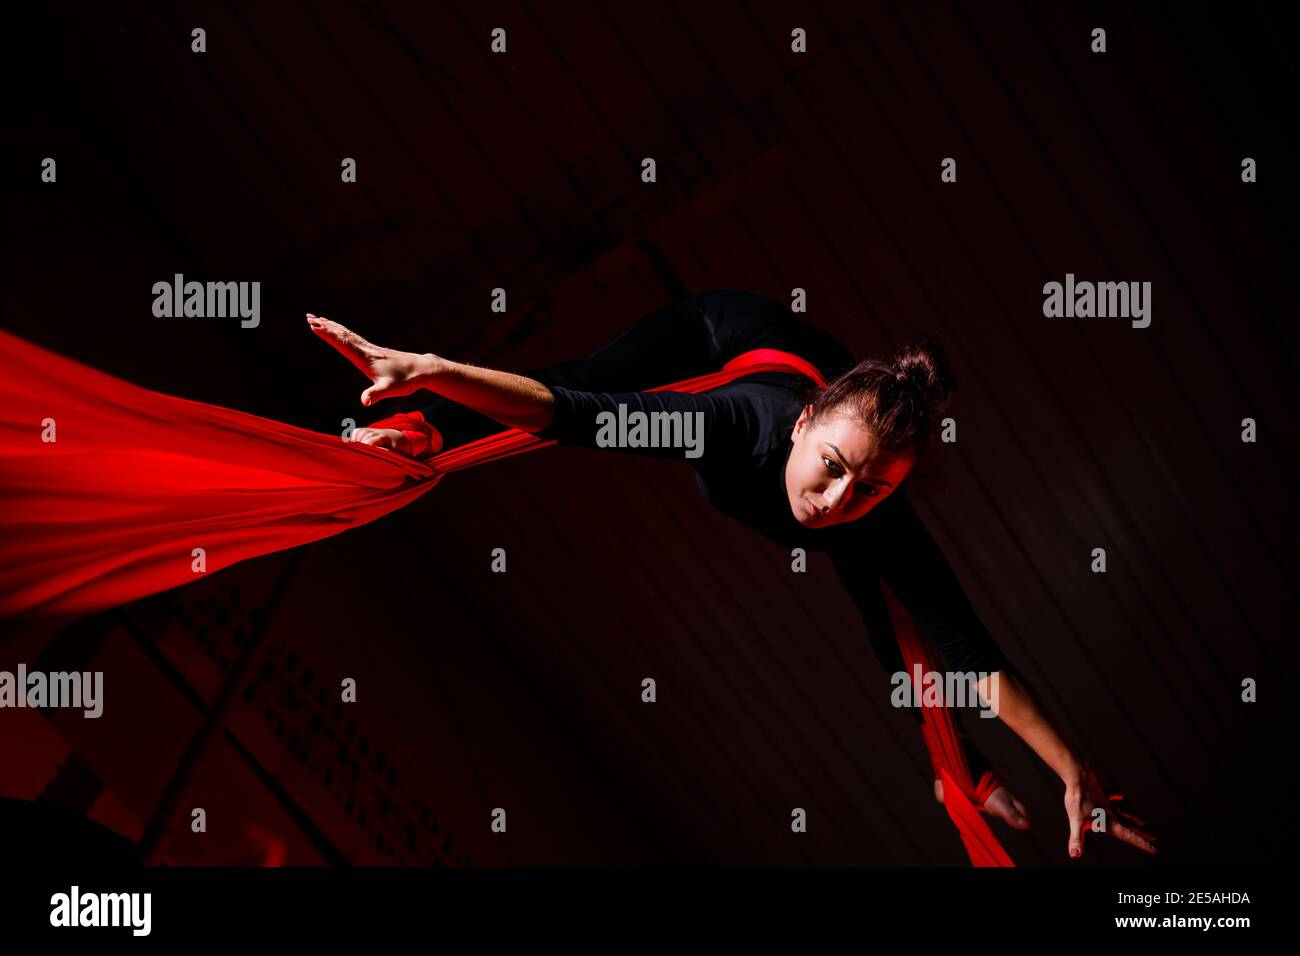 A sports girl performs gymnastic and circus exercises on red silk. Studio shooting on a dark background. Aerial gymnastics on canvas Stock Photo